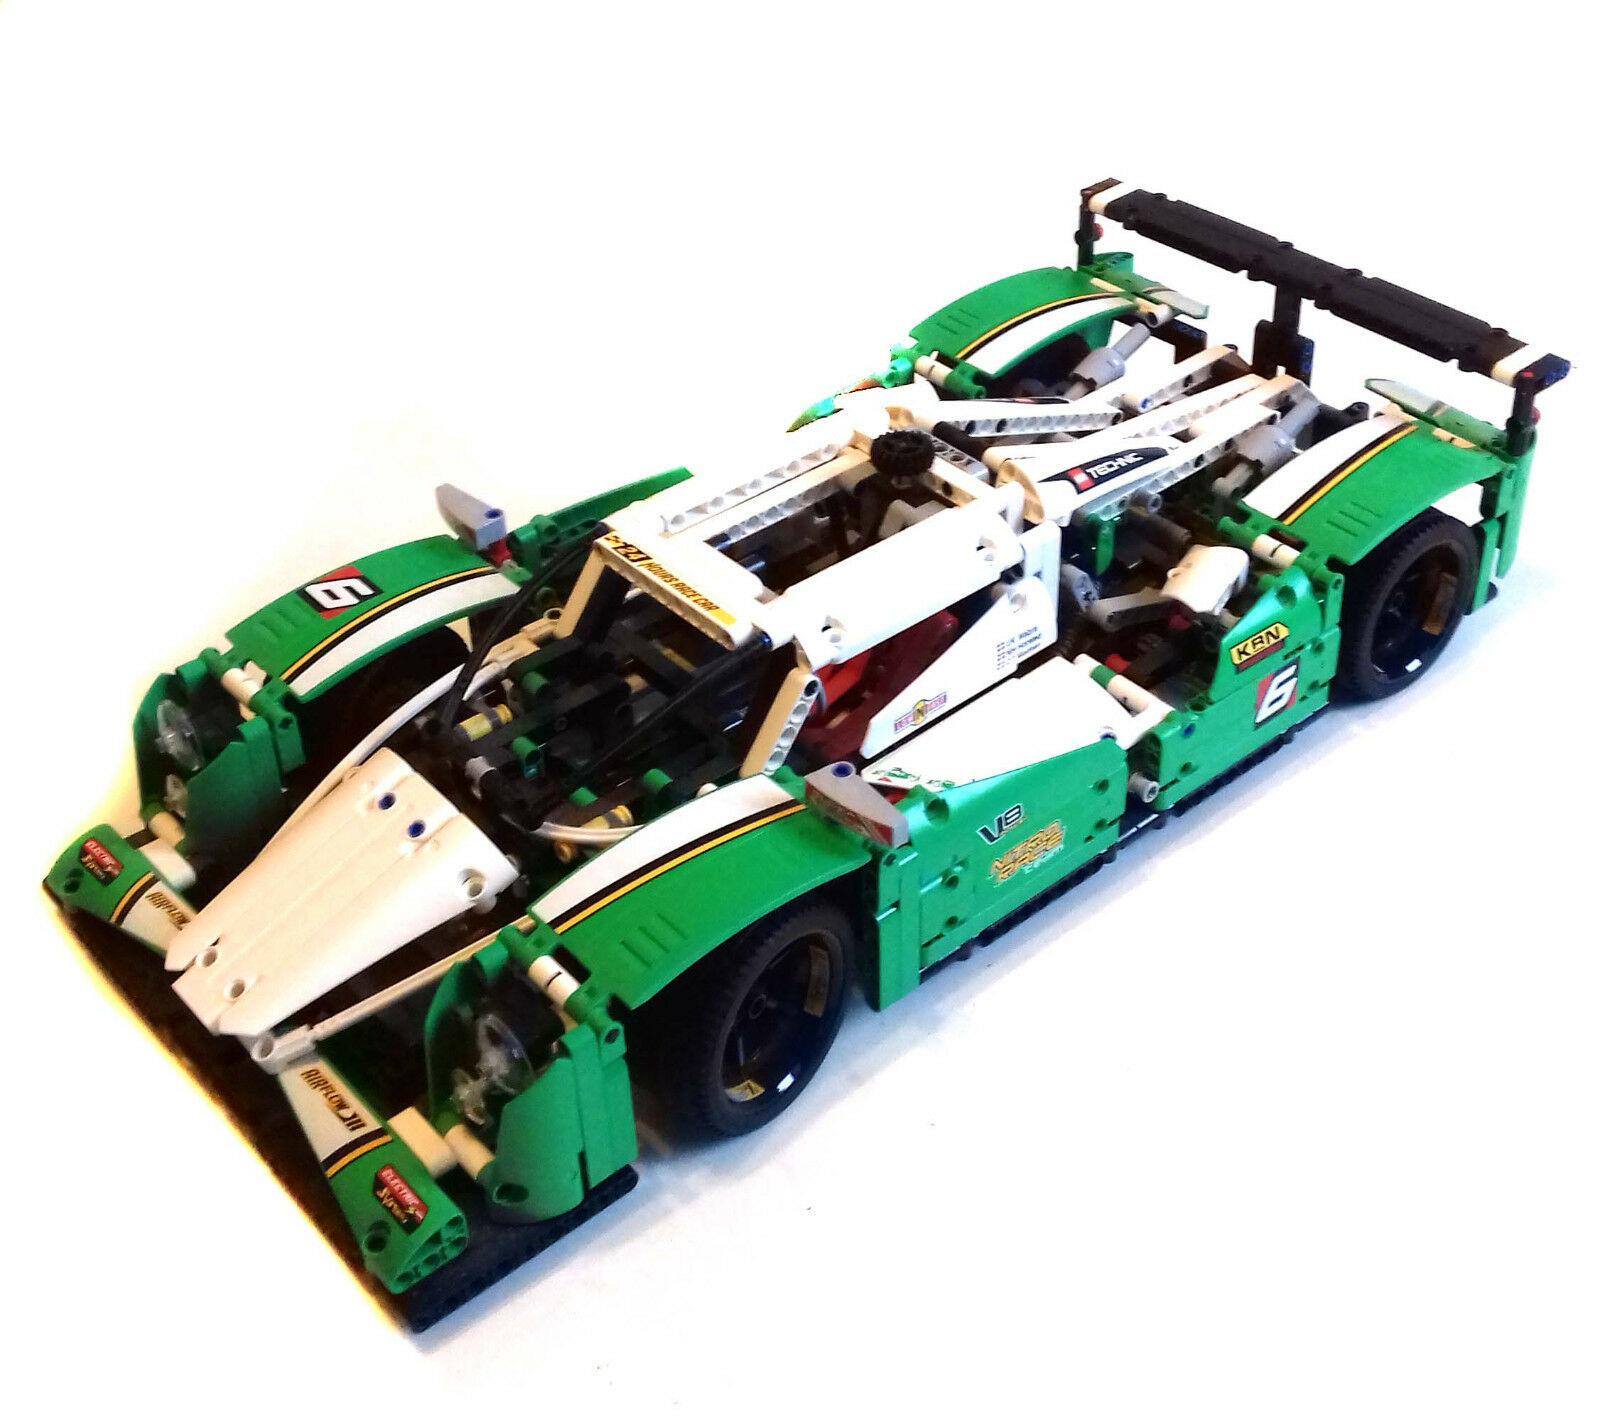 LEGO Toys TECHNIC 42039 24 HOURS LE MANS RACE CAR COMPLETED KIT - NICE